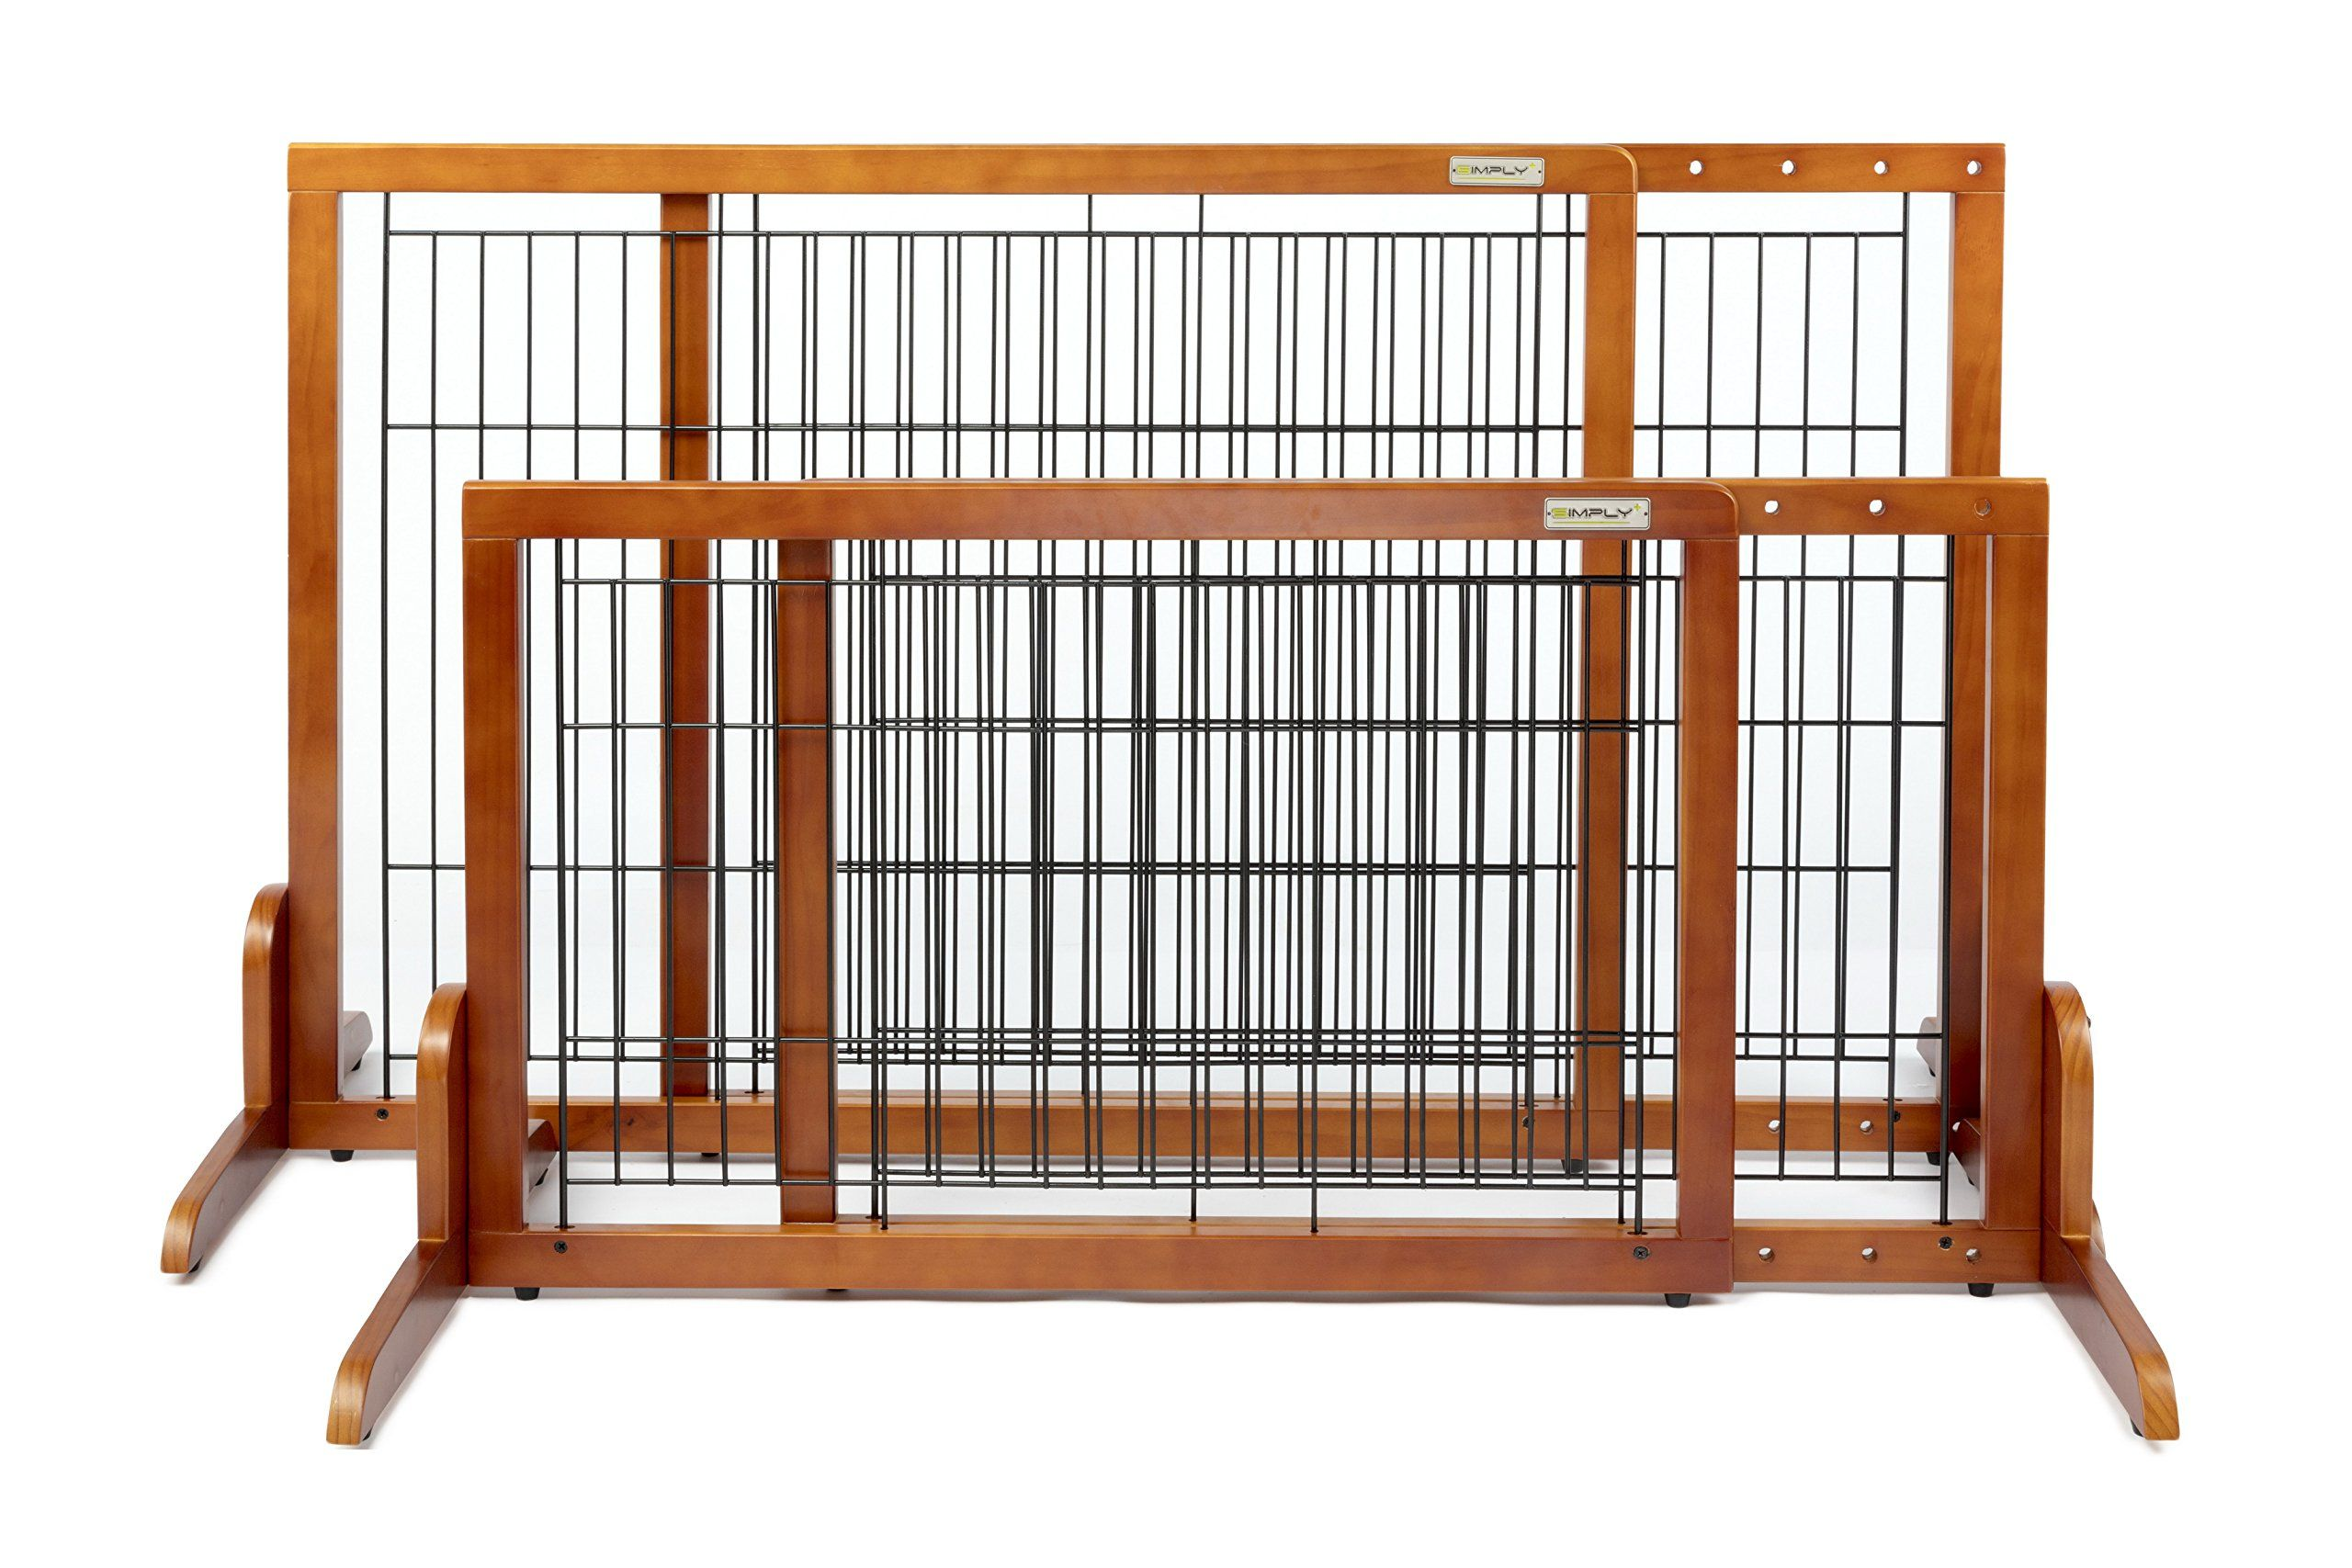 Simply Plus Wooden Pet Gate No Door Freestanding Pet Dog Gate For Indoor Home And Office Use Keeps Pets Safe Easy Set Up N Wooden Pet Gate Pet Gate Dog Gate